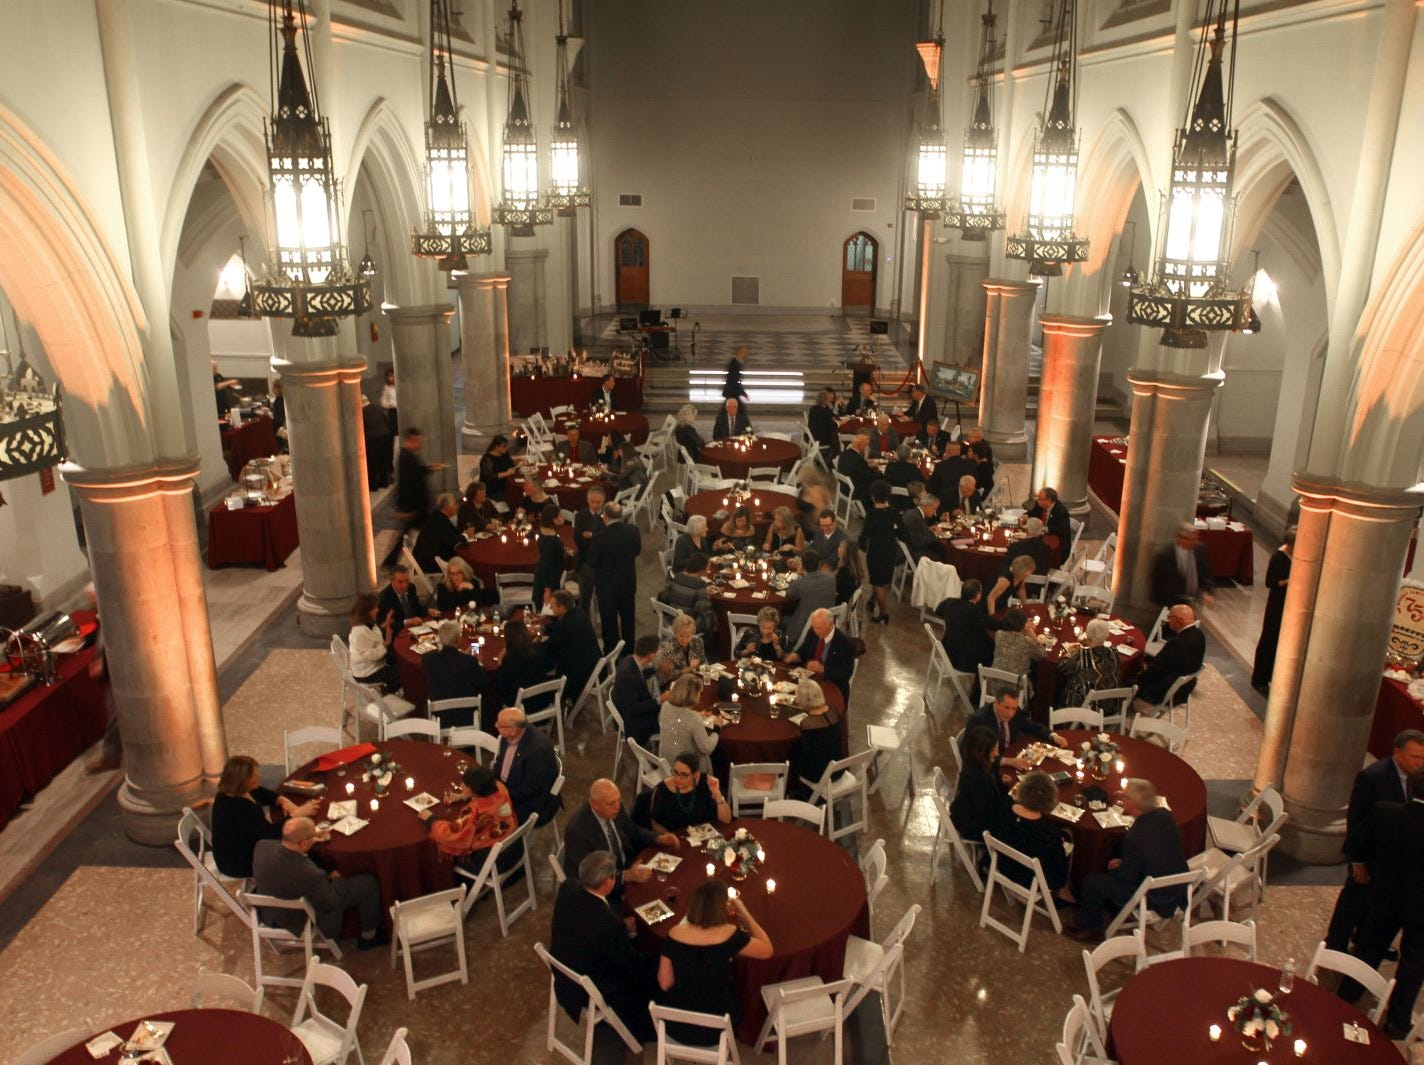 Wyckoff Family YMCA hosted its 75th anniversary gala to celebrate its benefactors, held at the Rio Vista seminary in Mahwah. 11/16/2018